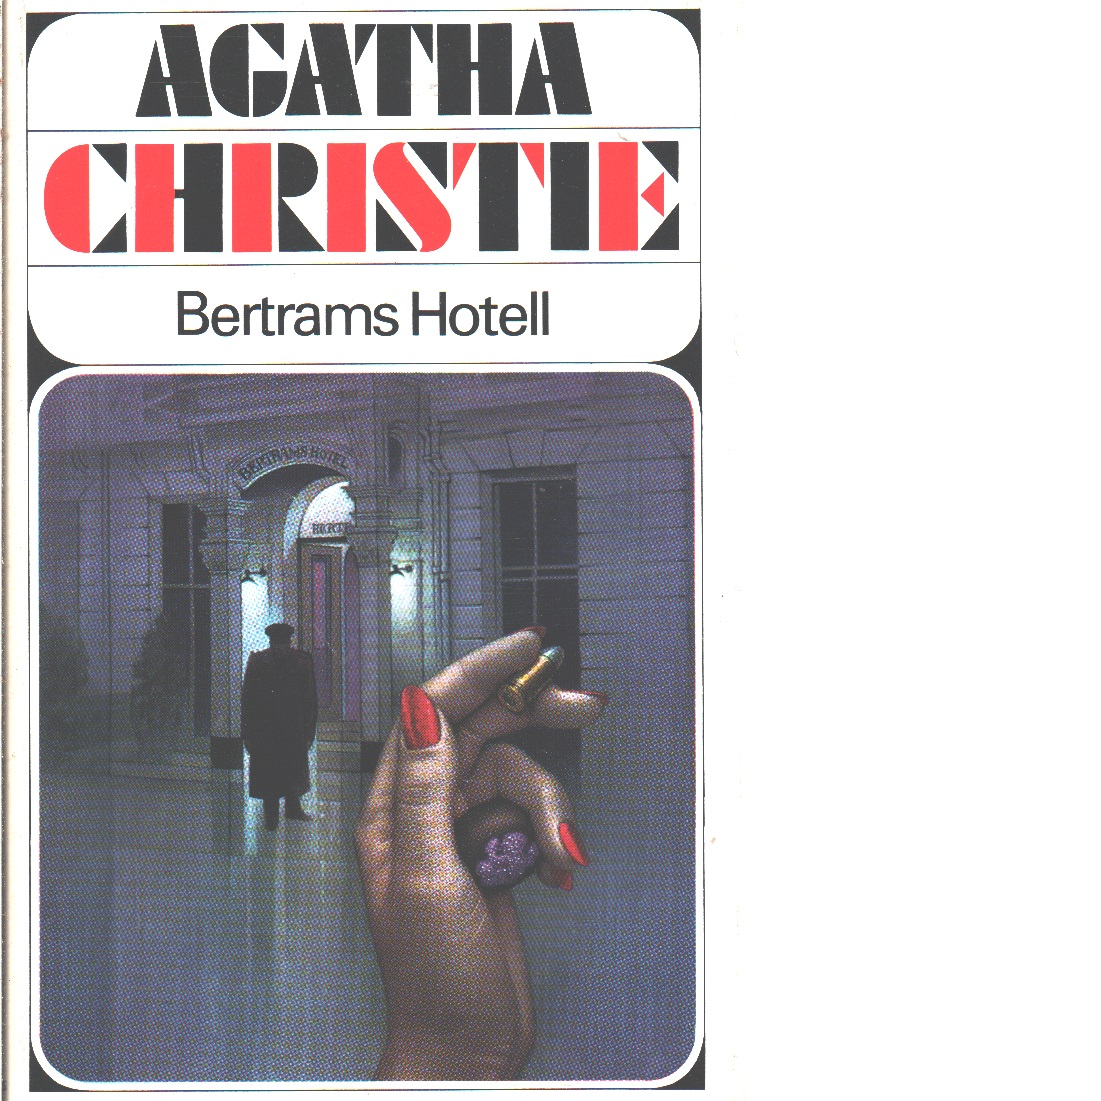 Bertrams hotell - Christie, Agatha